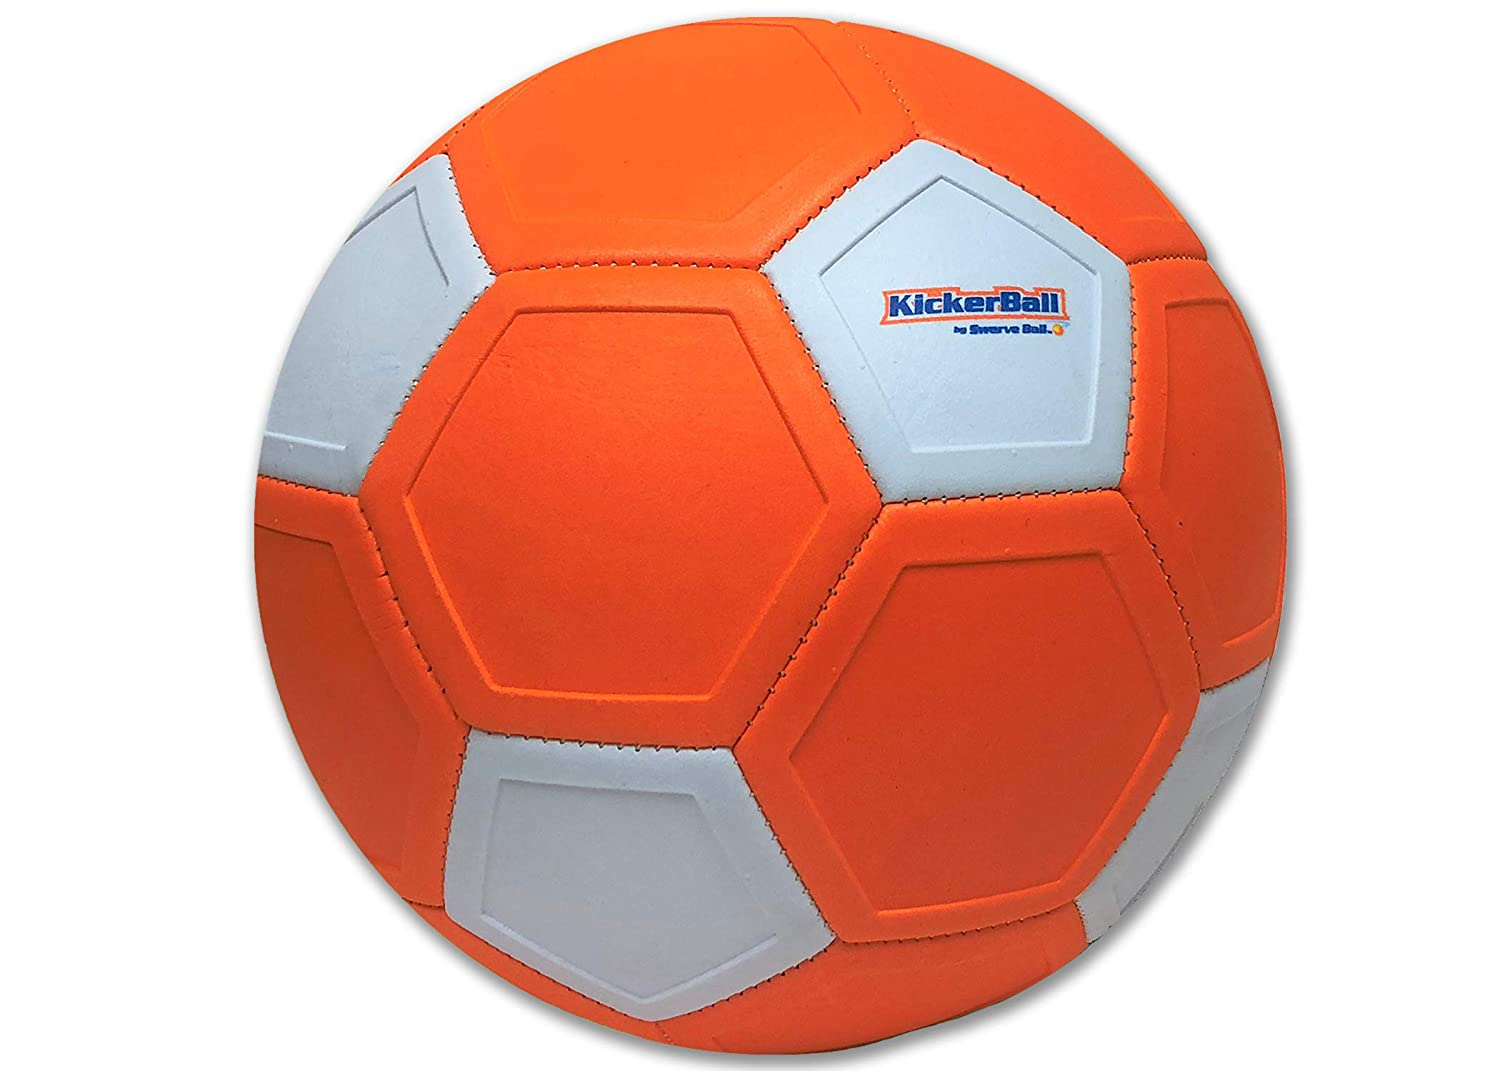 e6b3f5fc5e7 Kickerball - Curve and Swerve Ball with Pump  Amazon.co.uk  Sports    Outdoors